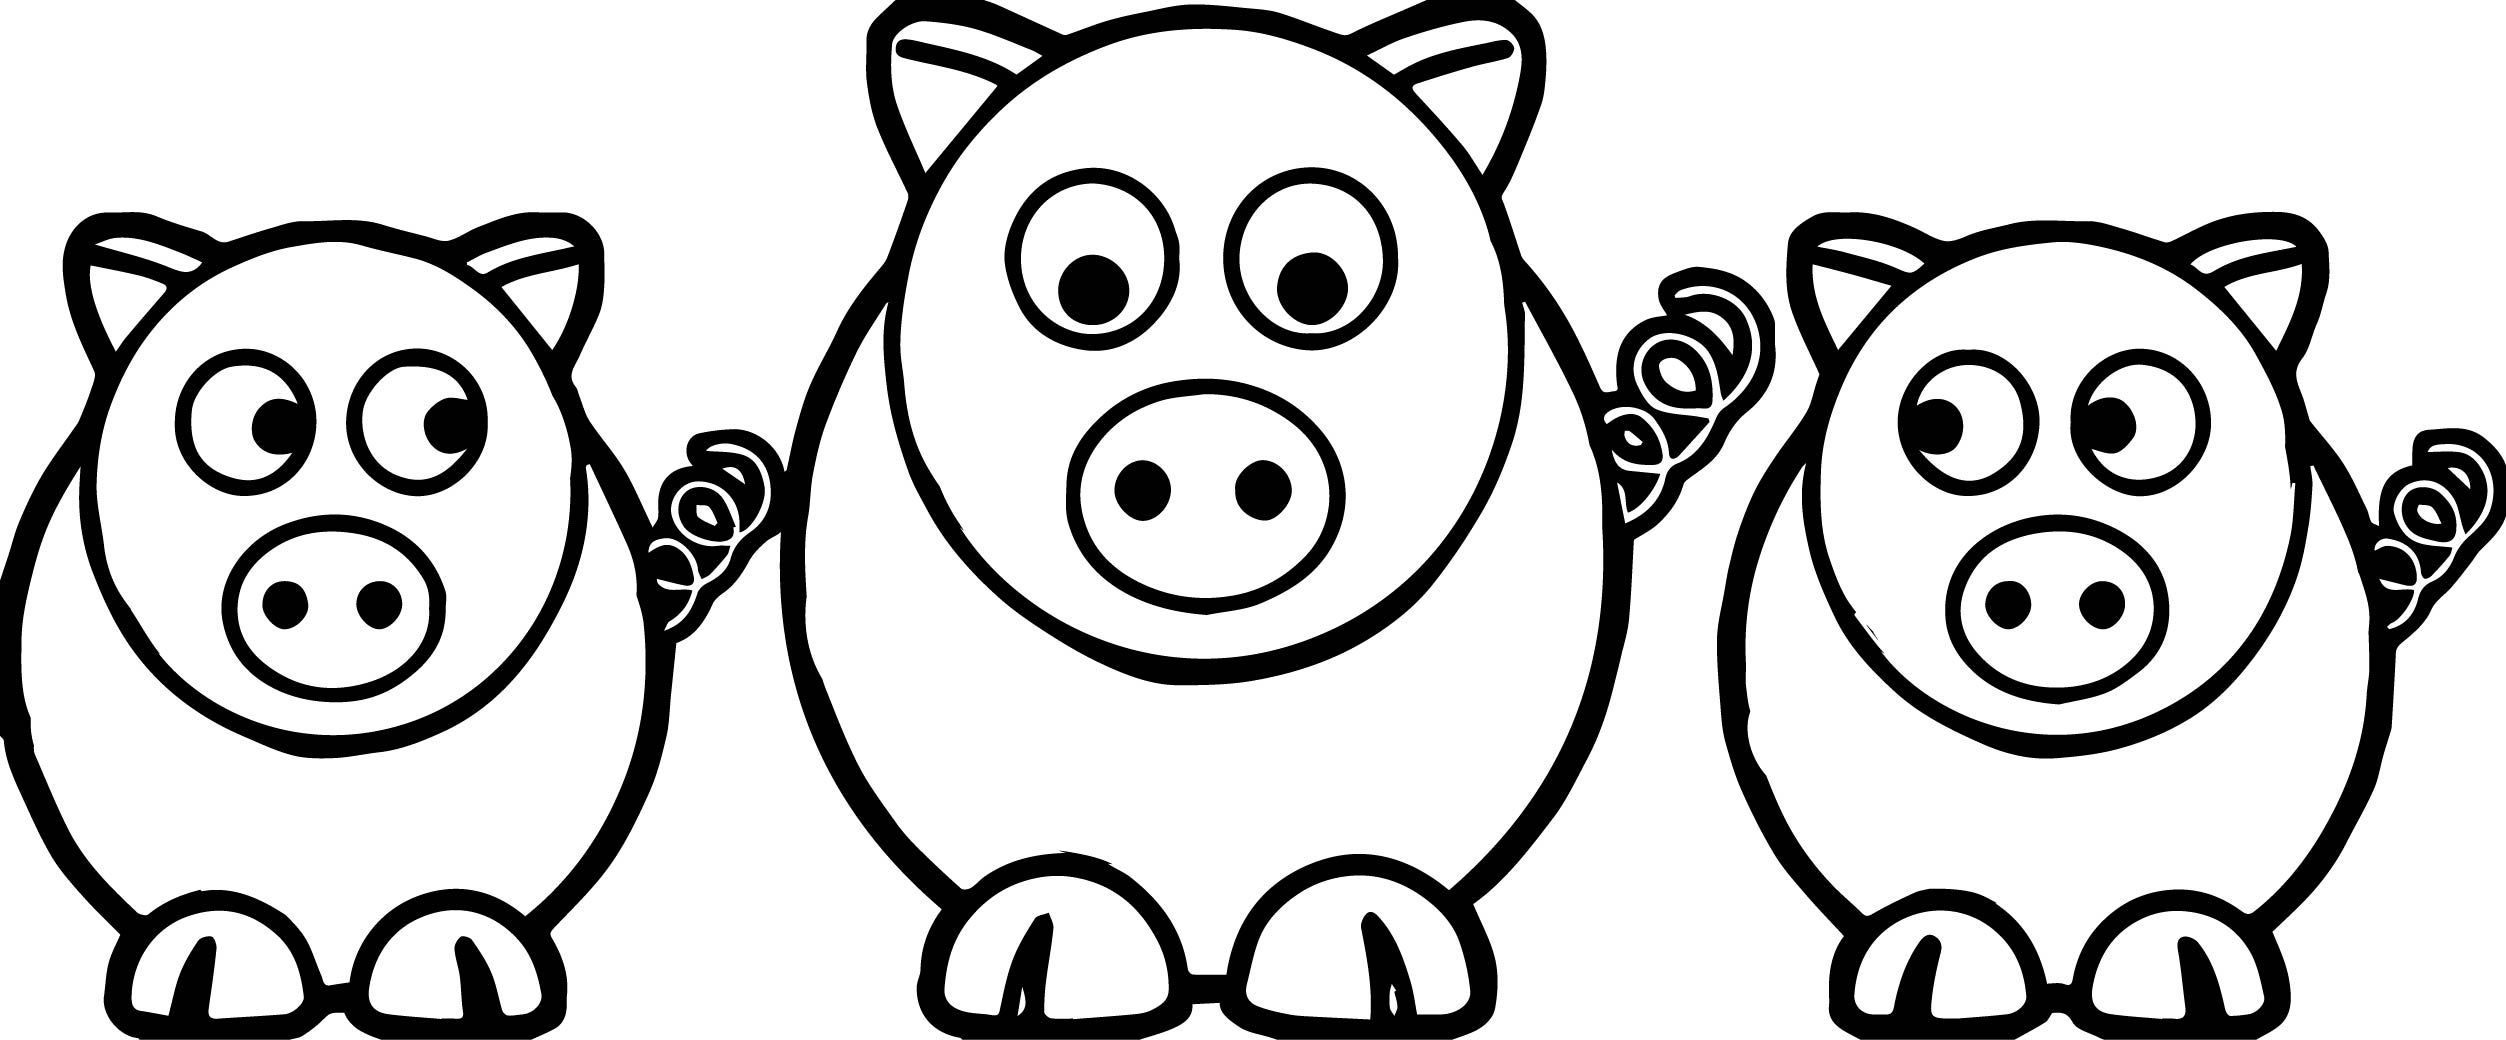 Coloring pages 3 little pigs - 3 Little Pigs Look Coloring Page